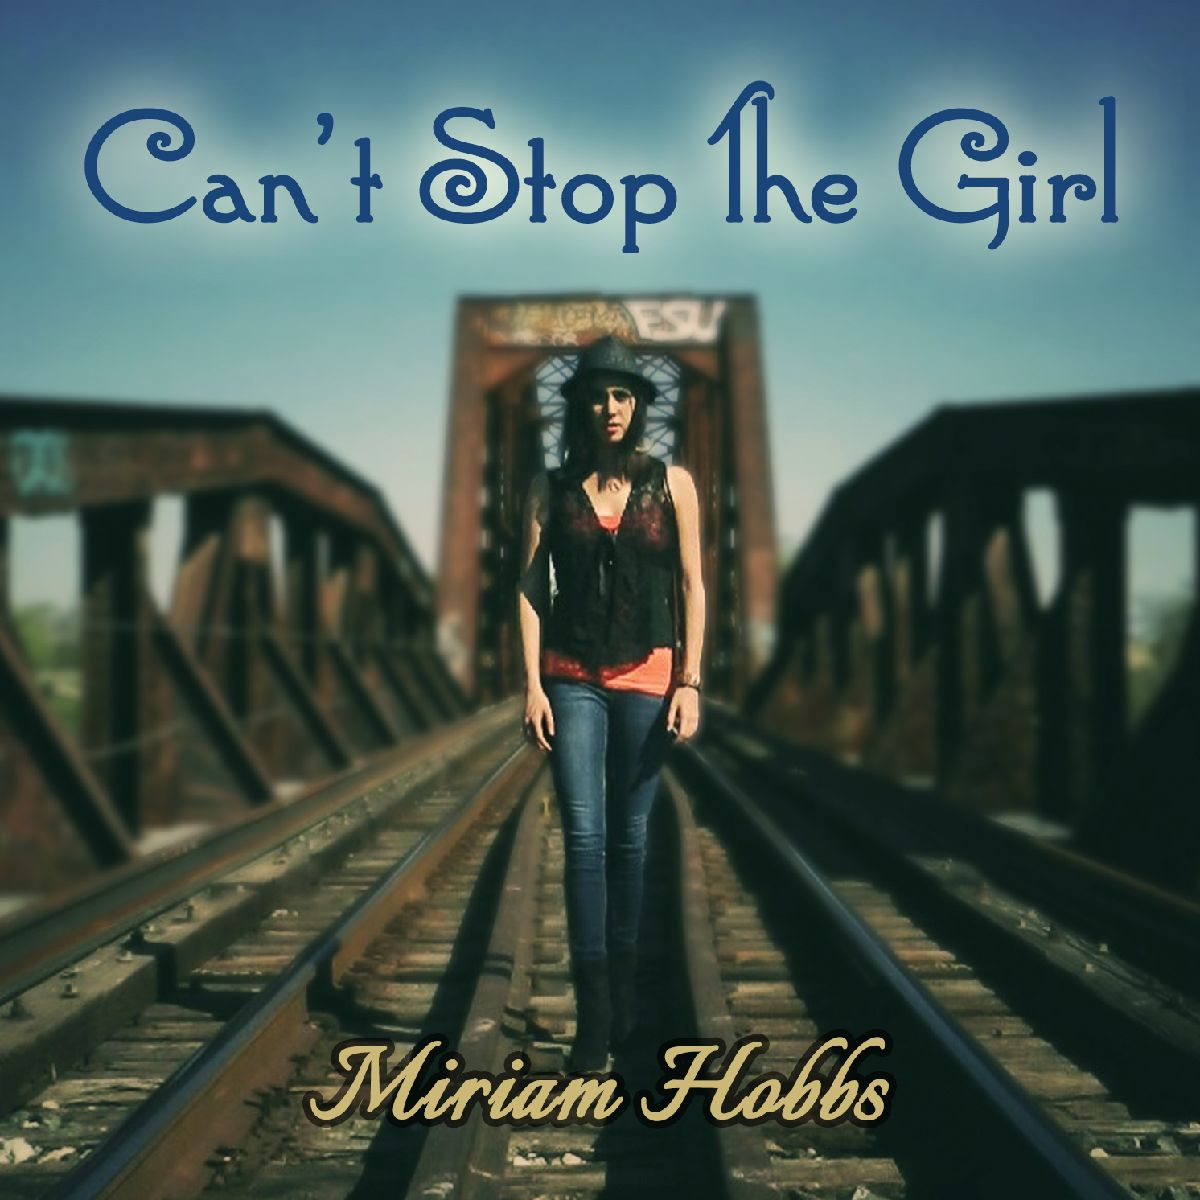 Cant Stop The Girl Album CD Cover Art Photo by Alicia R Paparo